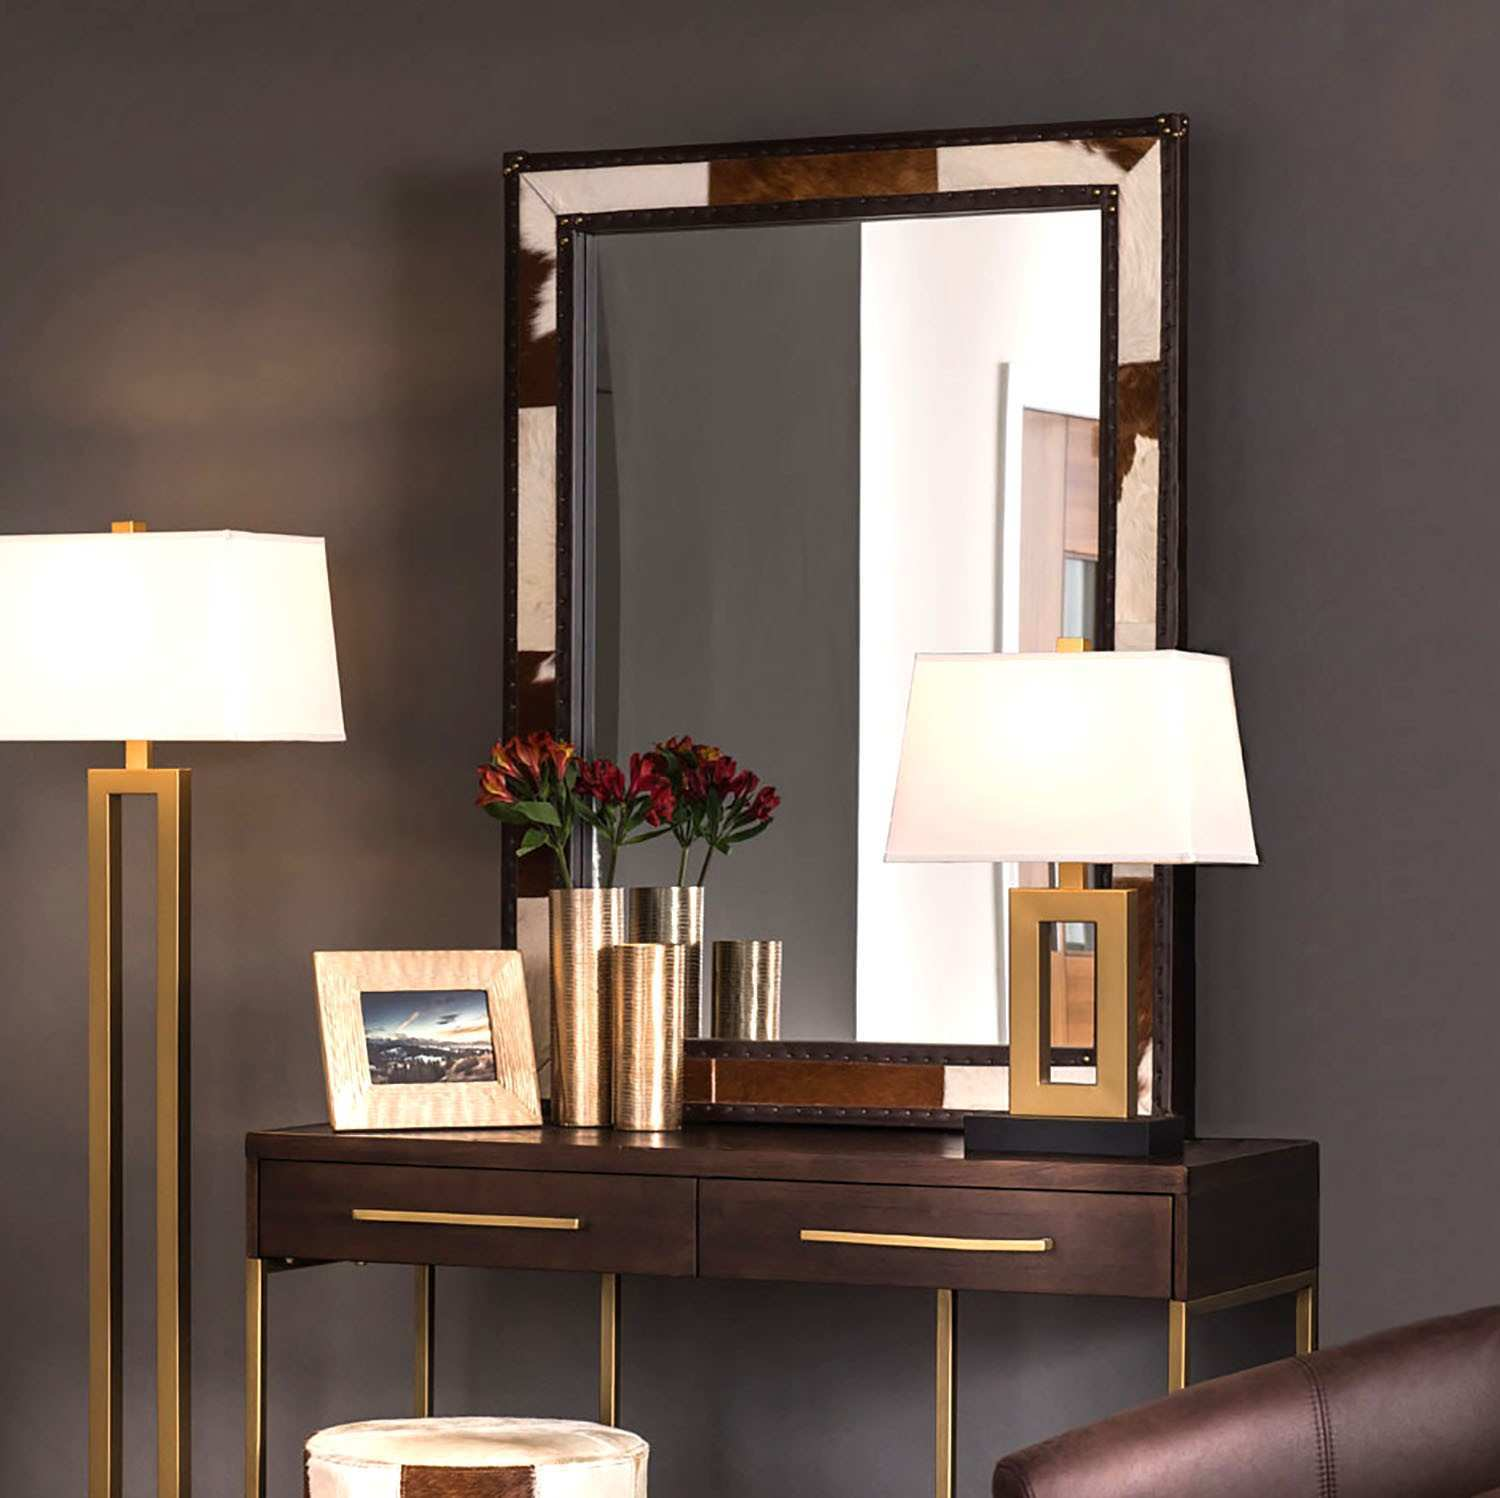 Fifty Five South Kensington Townhouse 120x90cm Wall Mirror in Brown